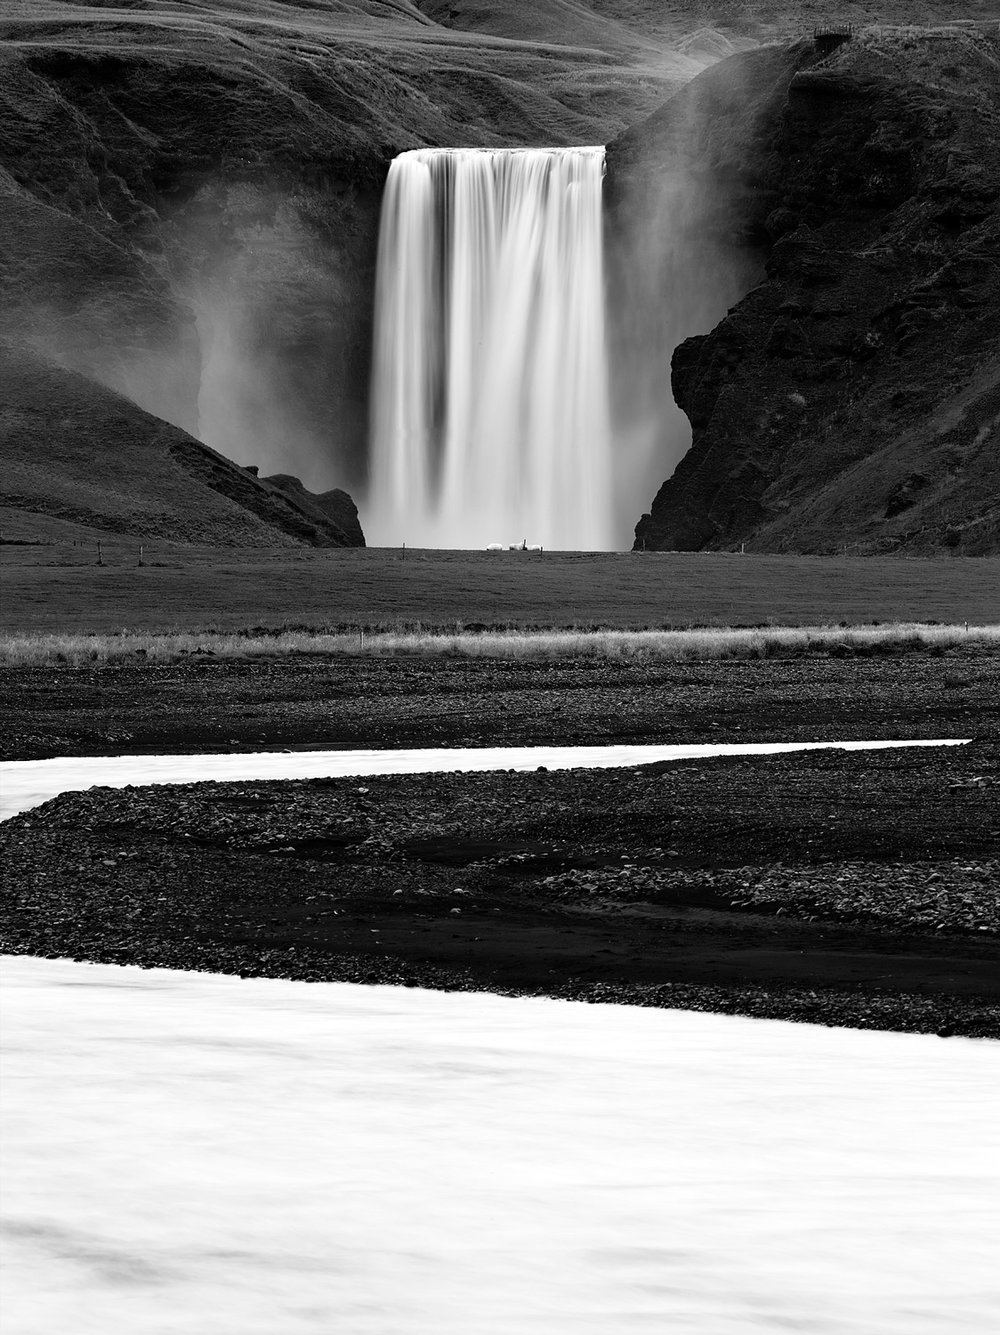 Copy of Skogafoss falls, Iceland 2014